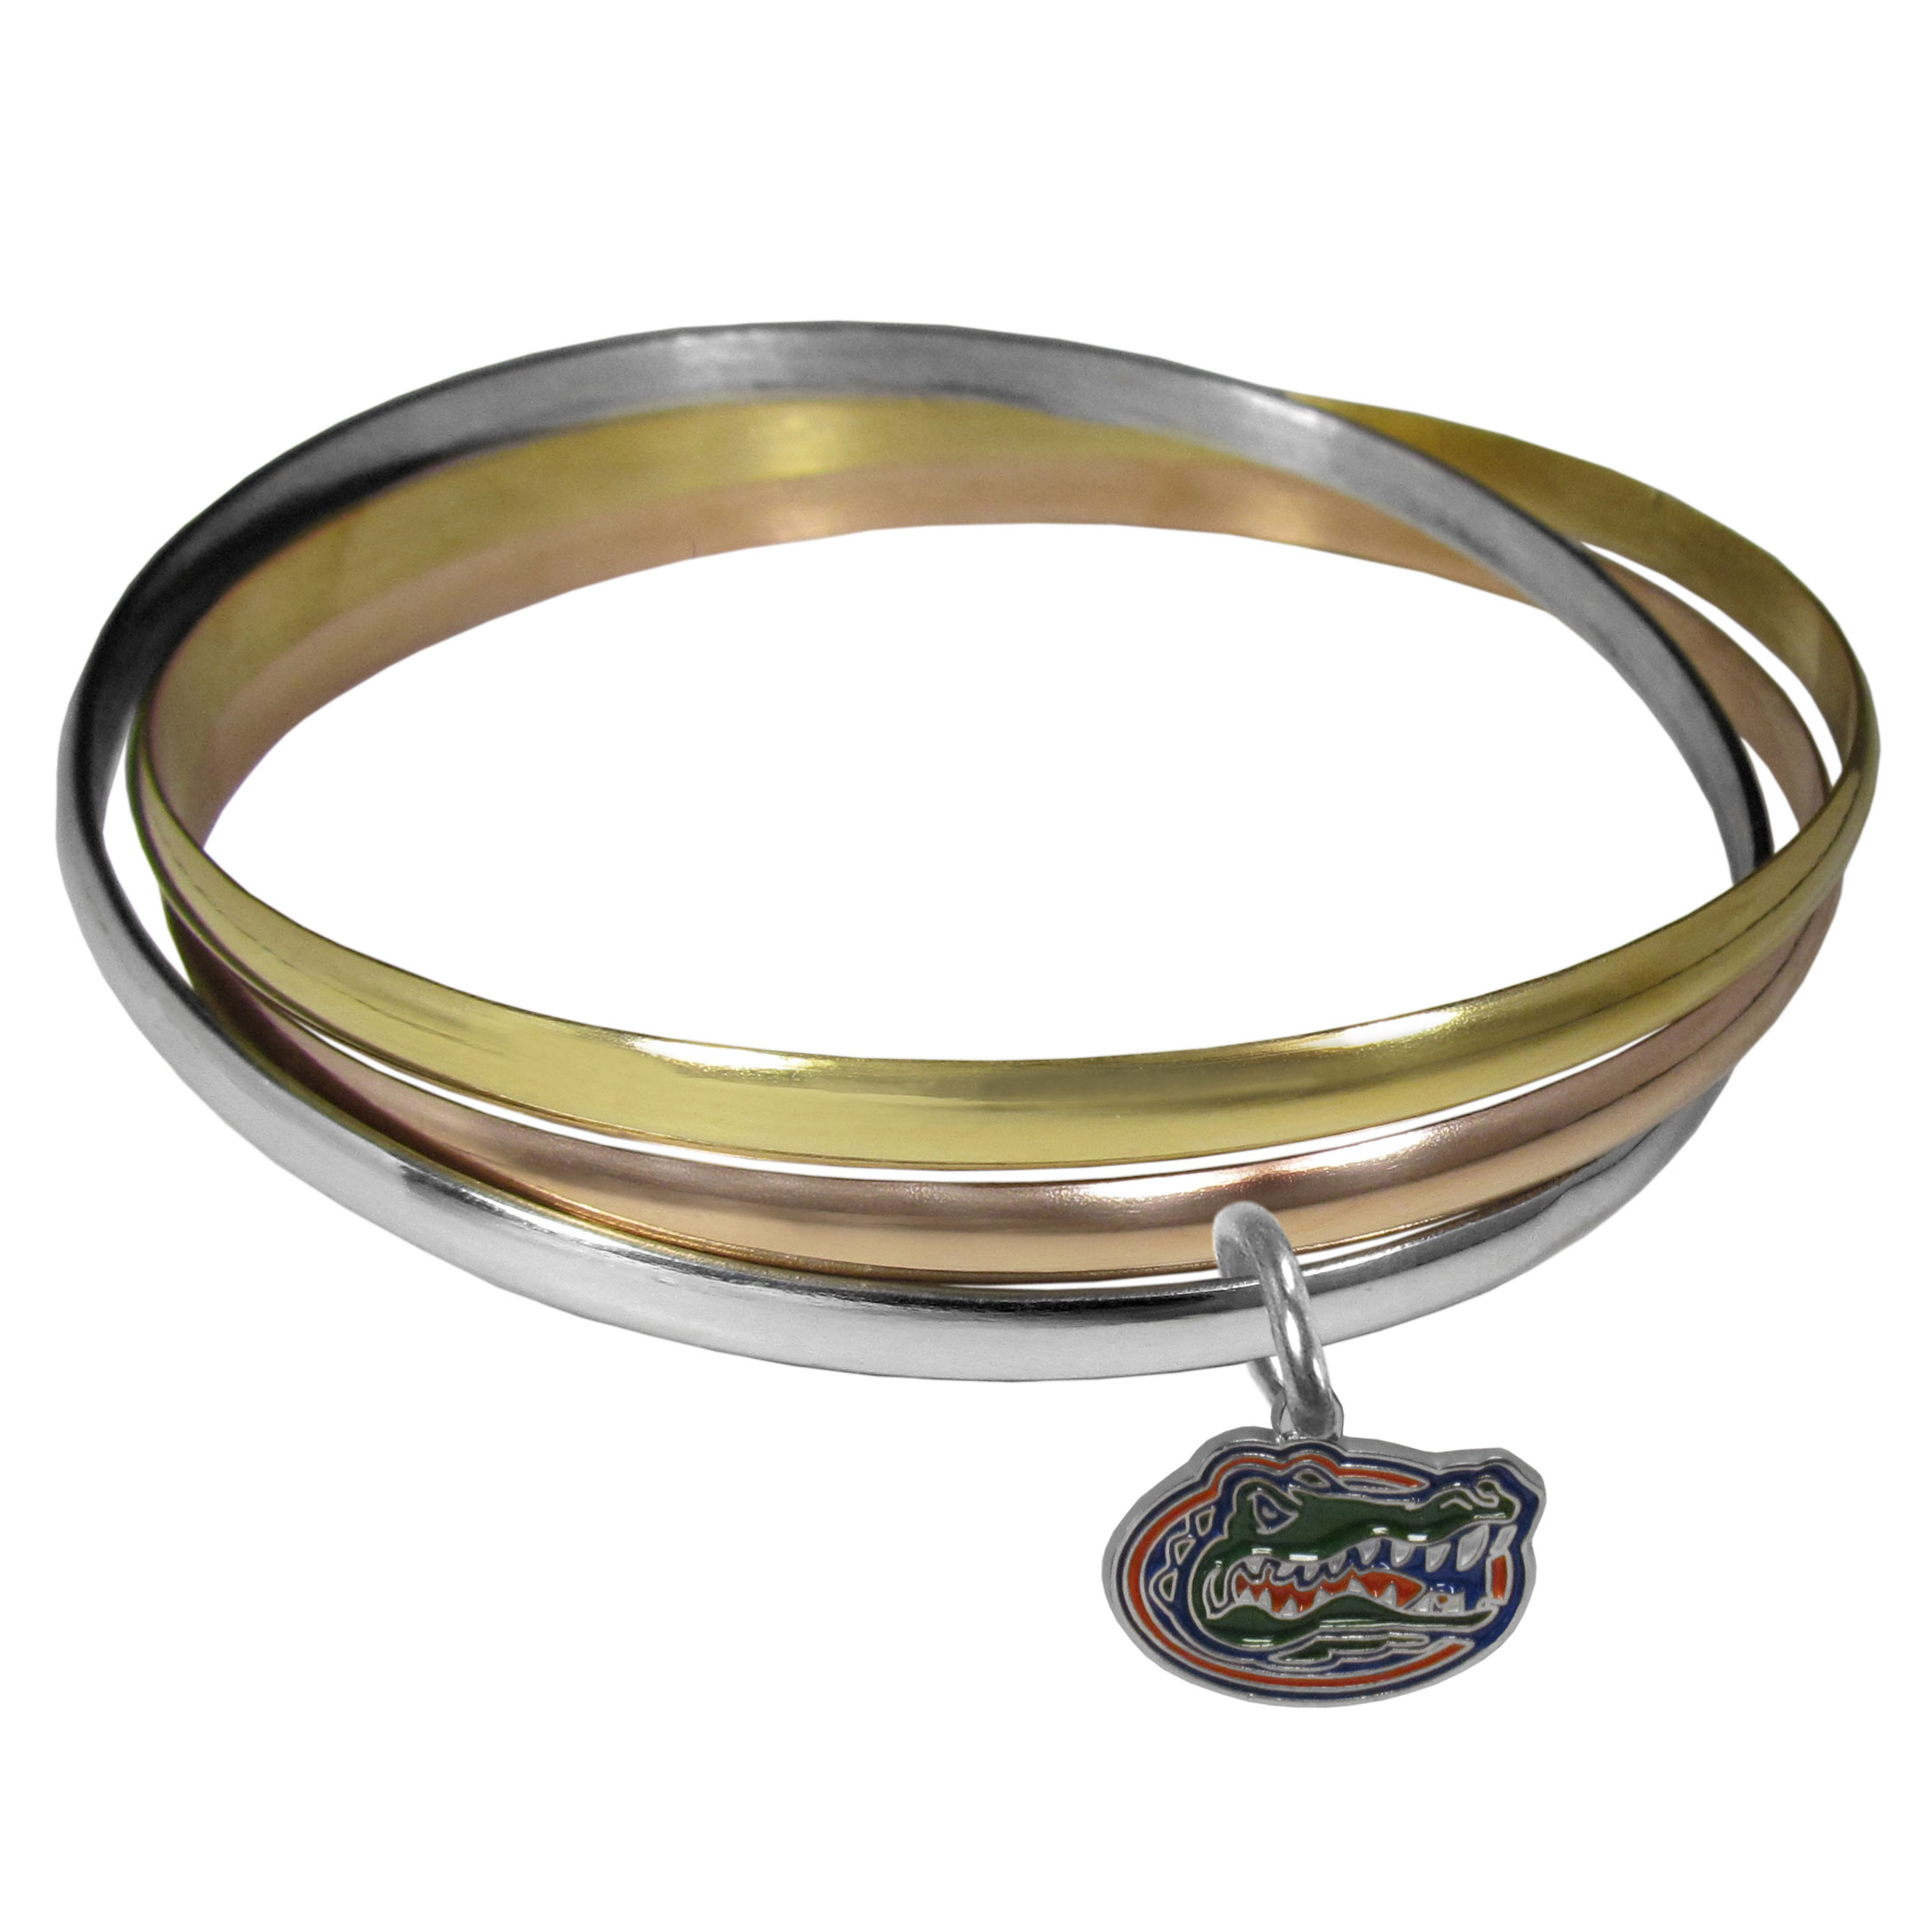 Florida Gators Tri-color Bangle Bracelet - These beautiful bangles come in a interlocking style and feature a fully cast Florida Gators charm with enameled team colors. The bracelet has a silver toned bangle, gold tone bangle and brass toned bangle.